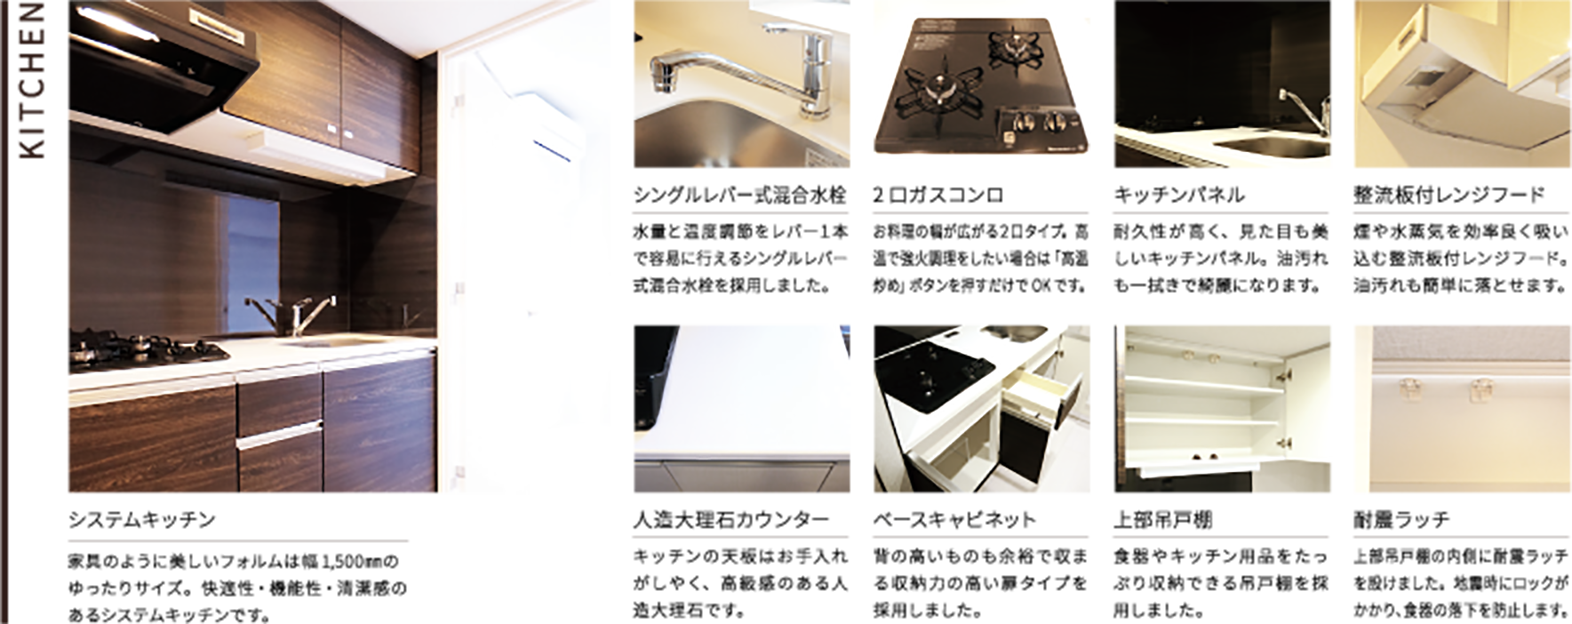 The residence of tokyo ty16 for Kitchen equipment contractors